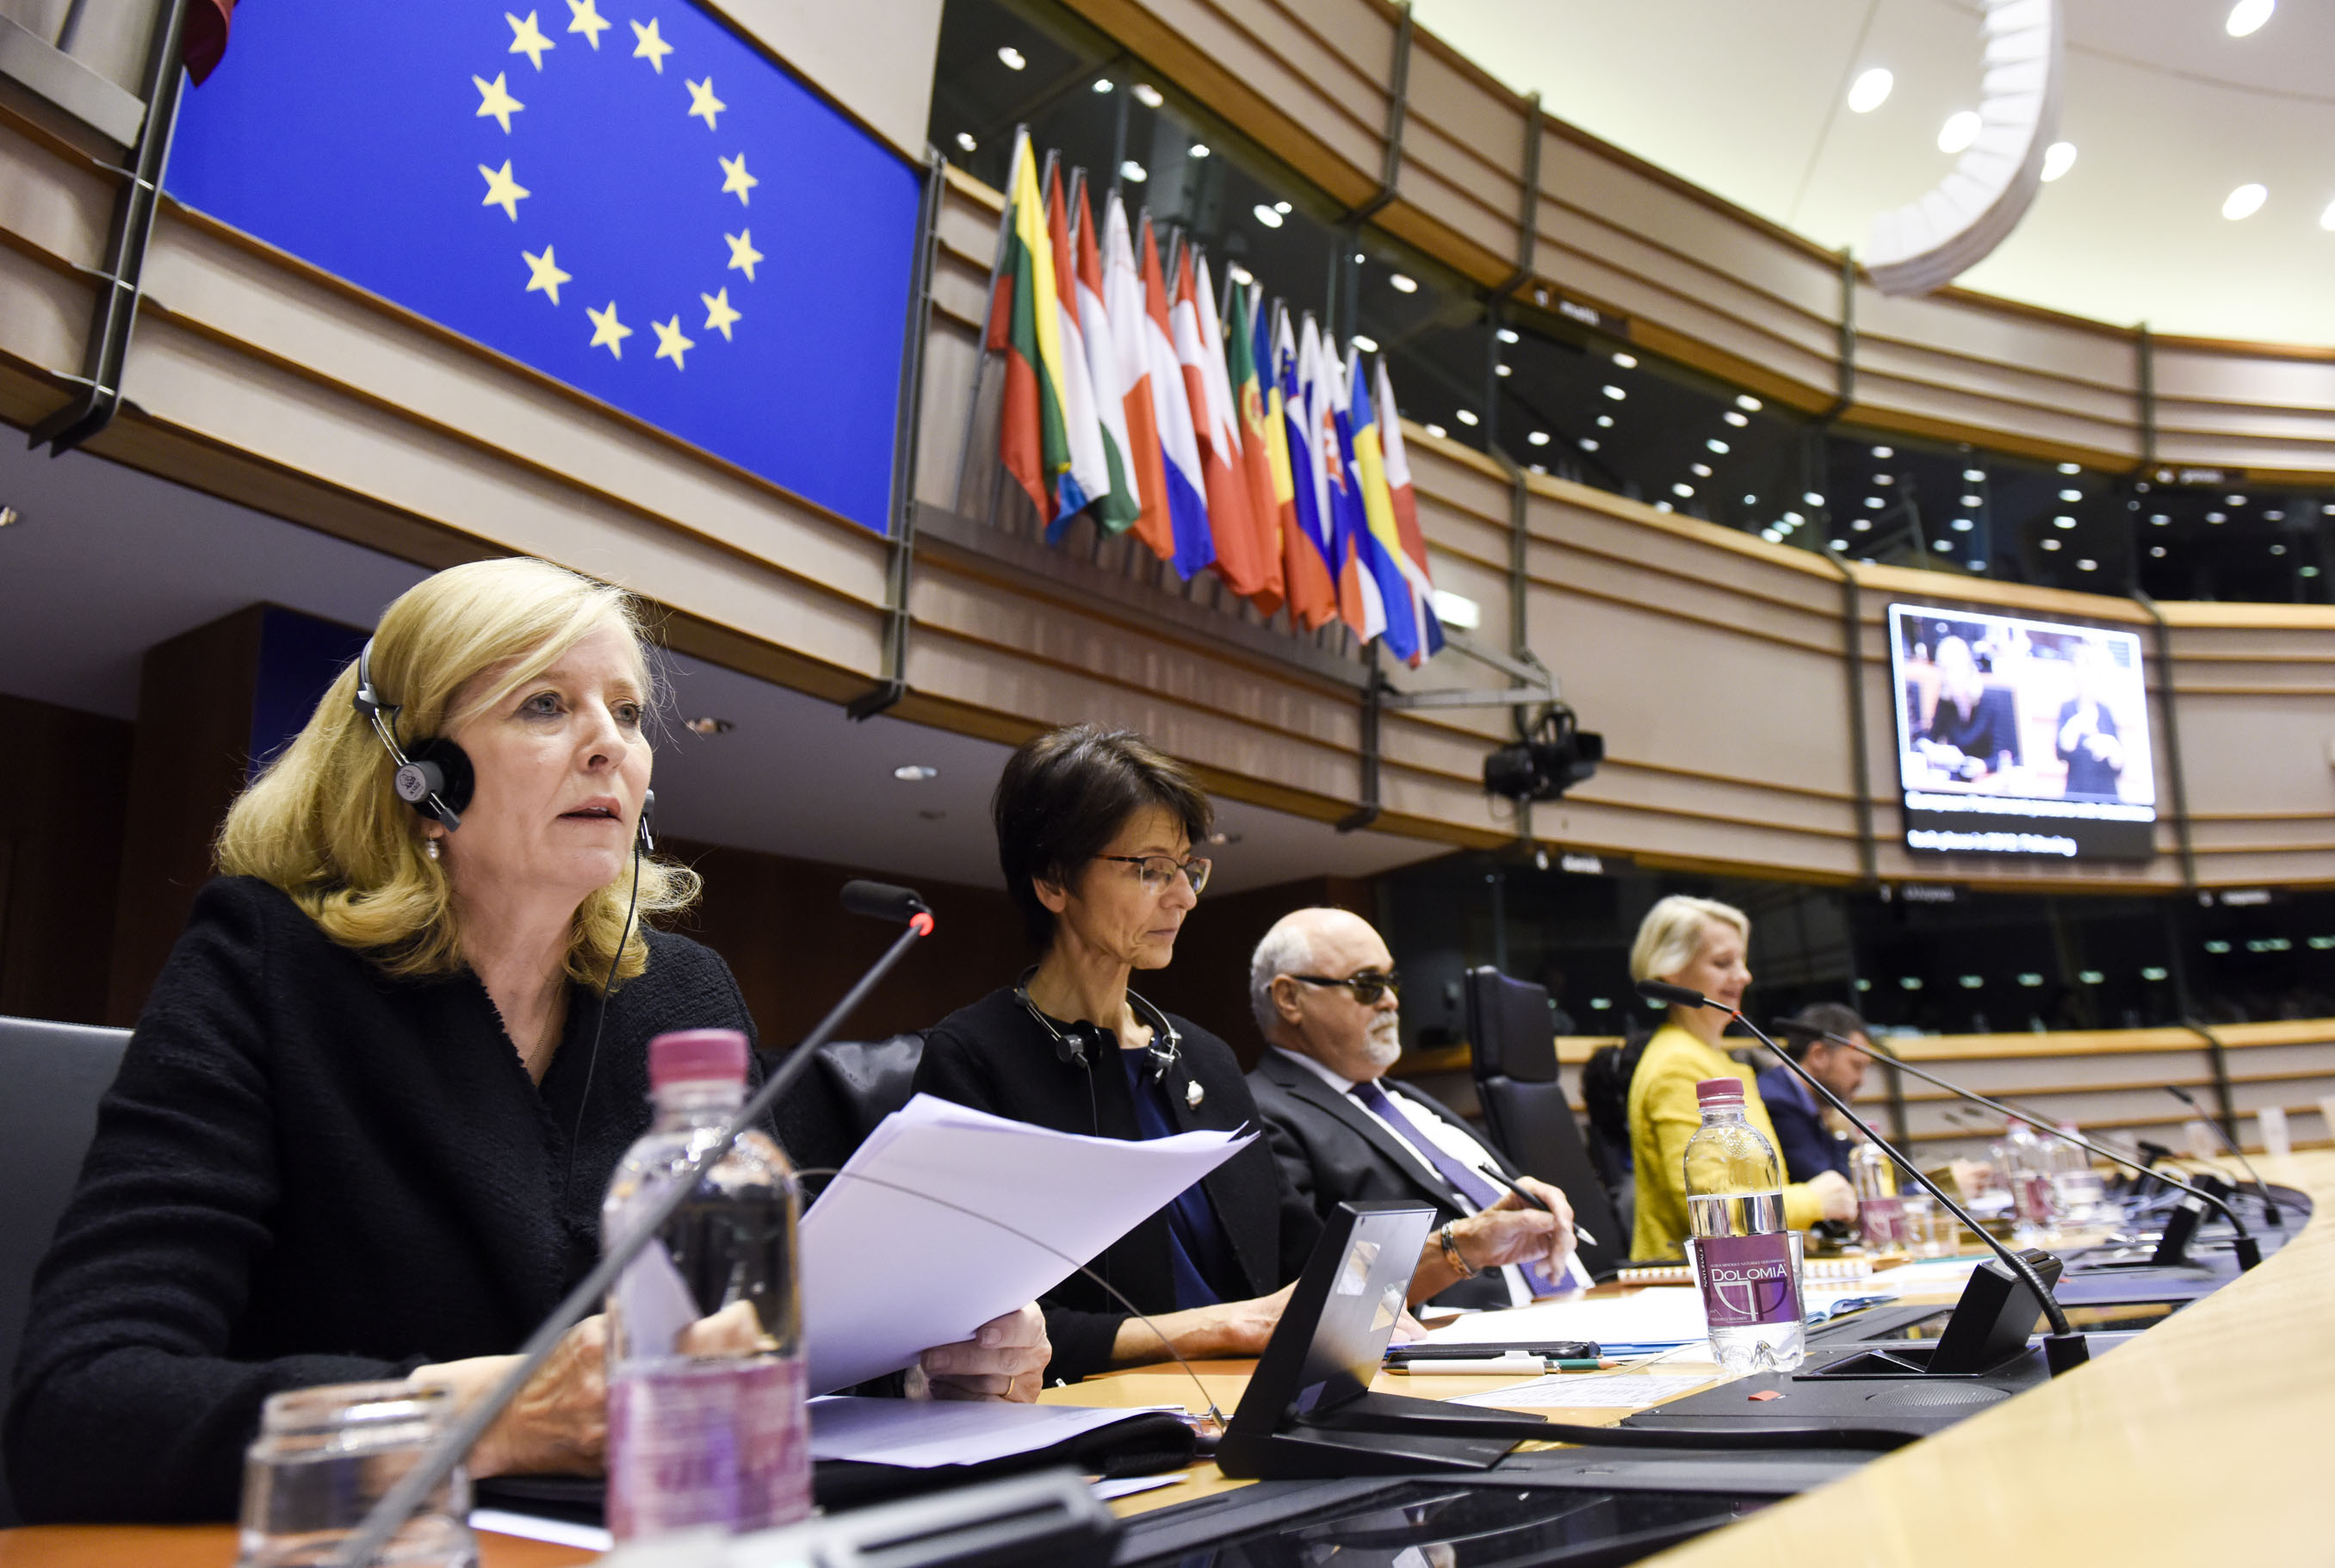 The European Ombudsman speaking at the 4th European Parliament of Persons with Disabilities.